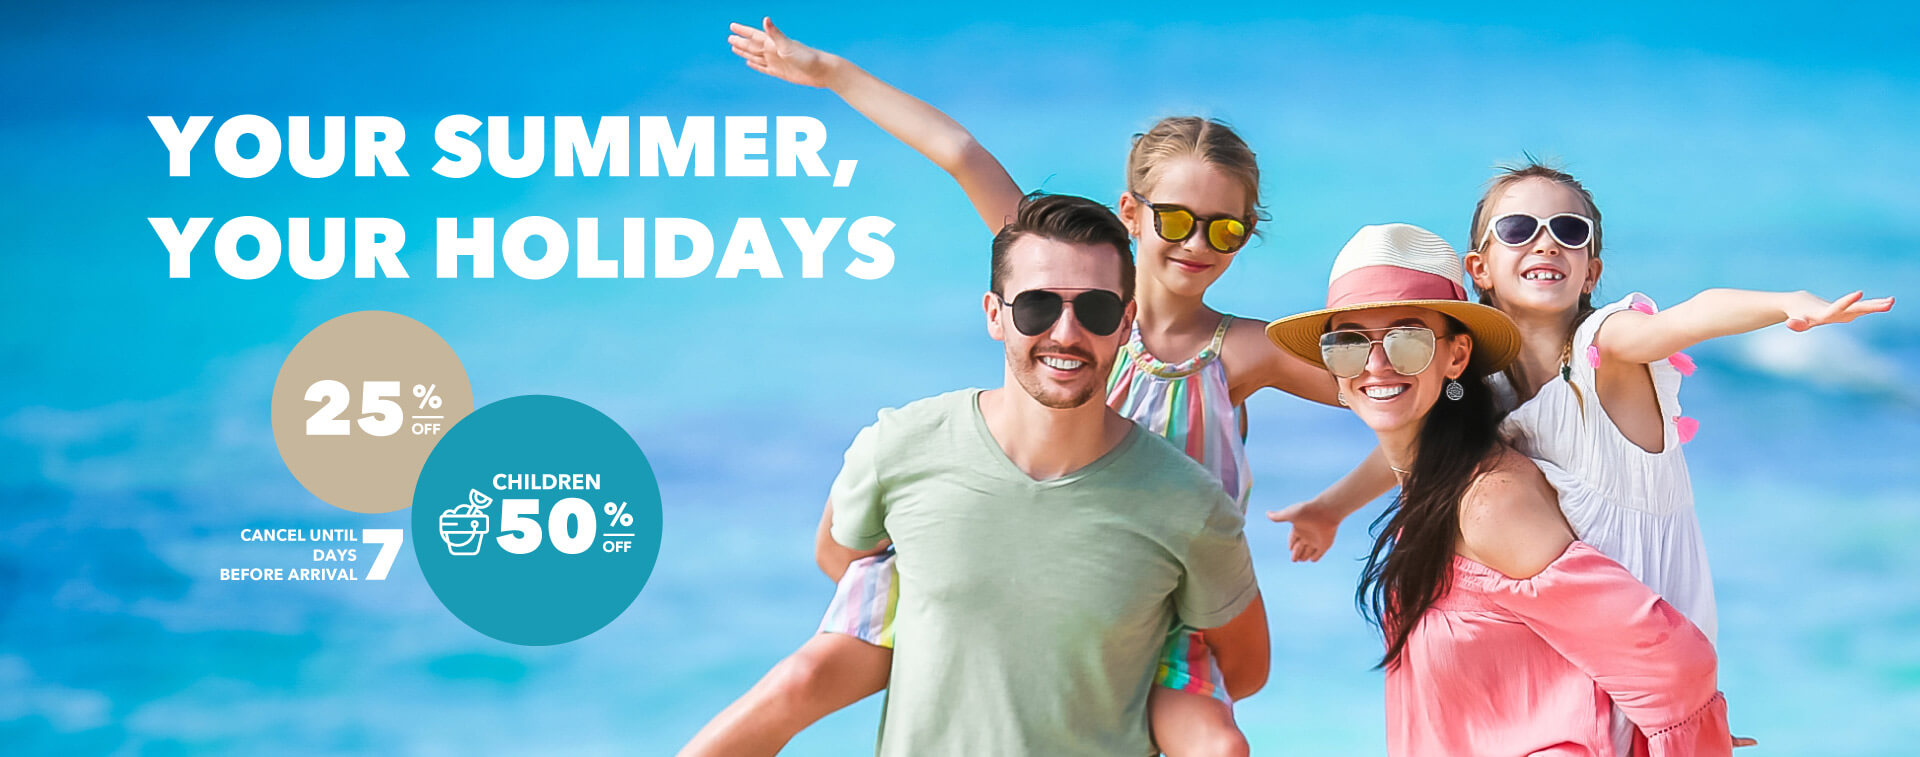 Your Summer, Your Holidays with BLUESEA Hotels